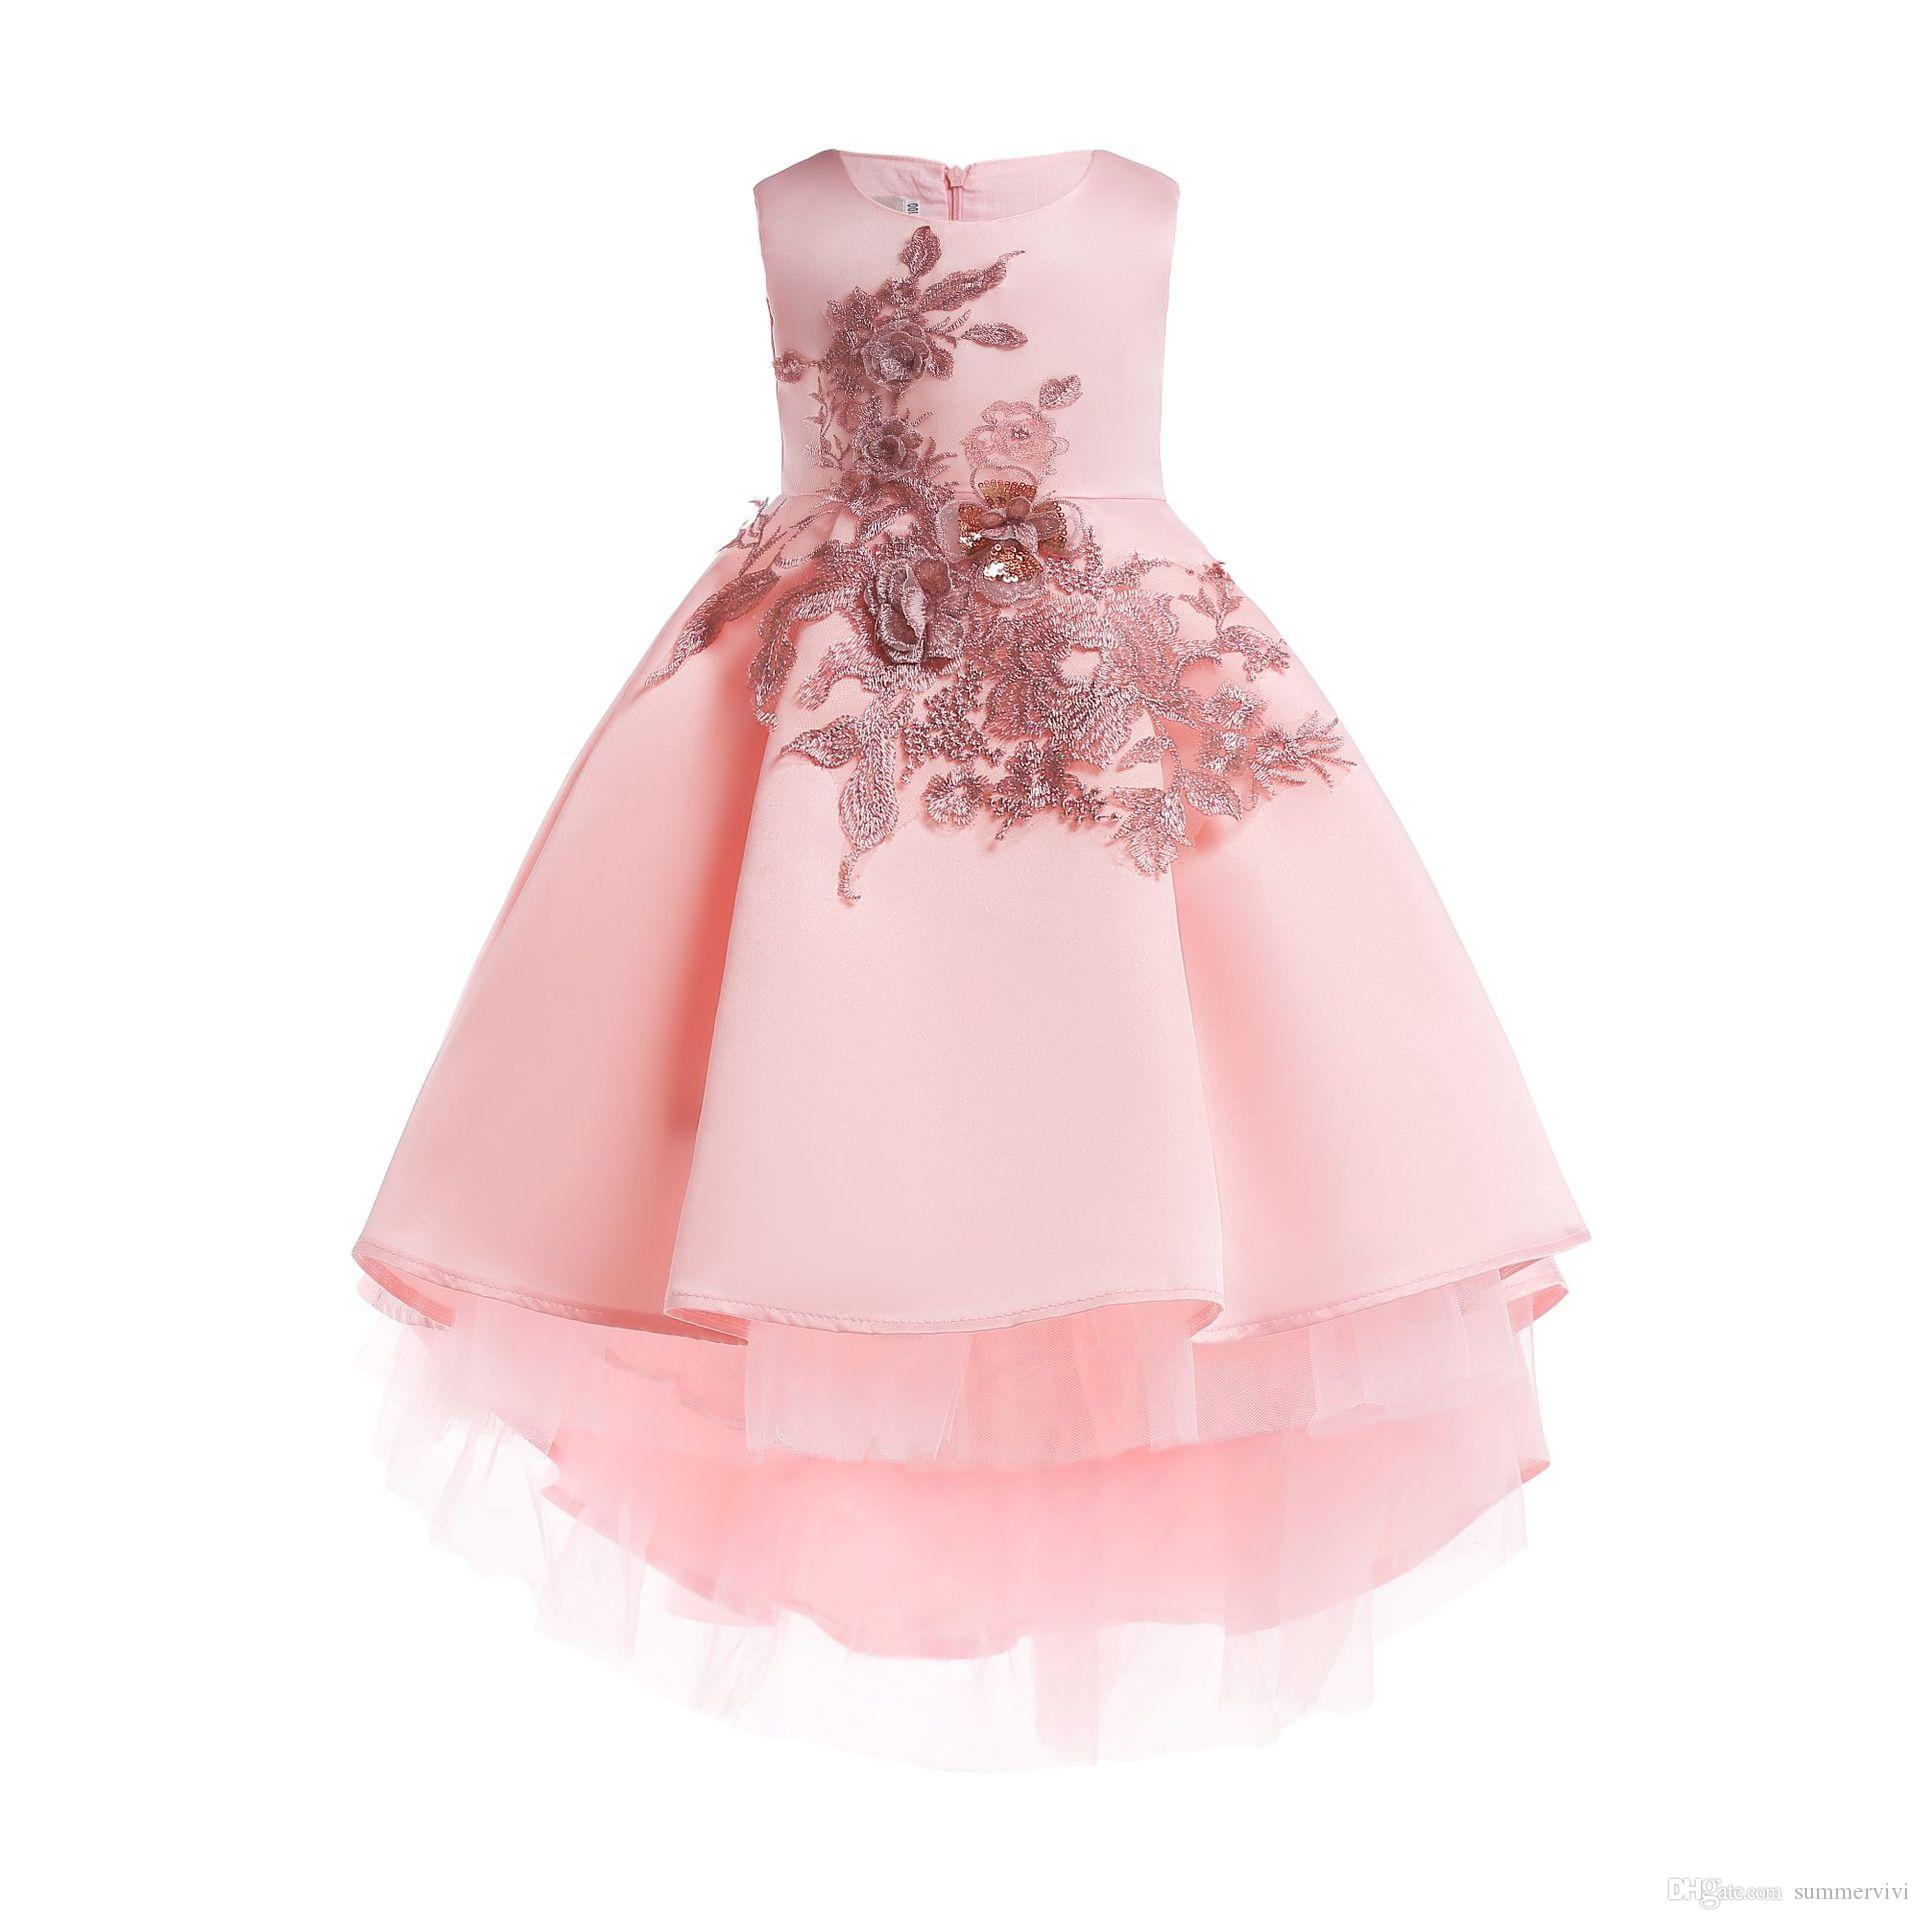 1555813b5 2019 Boutique Girls Party Dresses Kids Sequins Stereo Flower Embroidery  Princess Dress Children Ribbon Bows Belt Dovetail Dress Pink Gray F0371  From ...